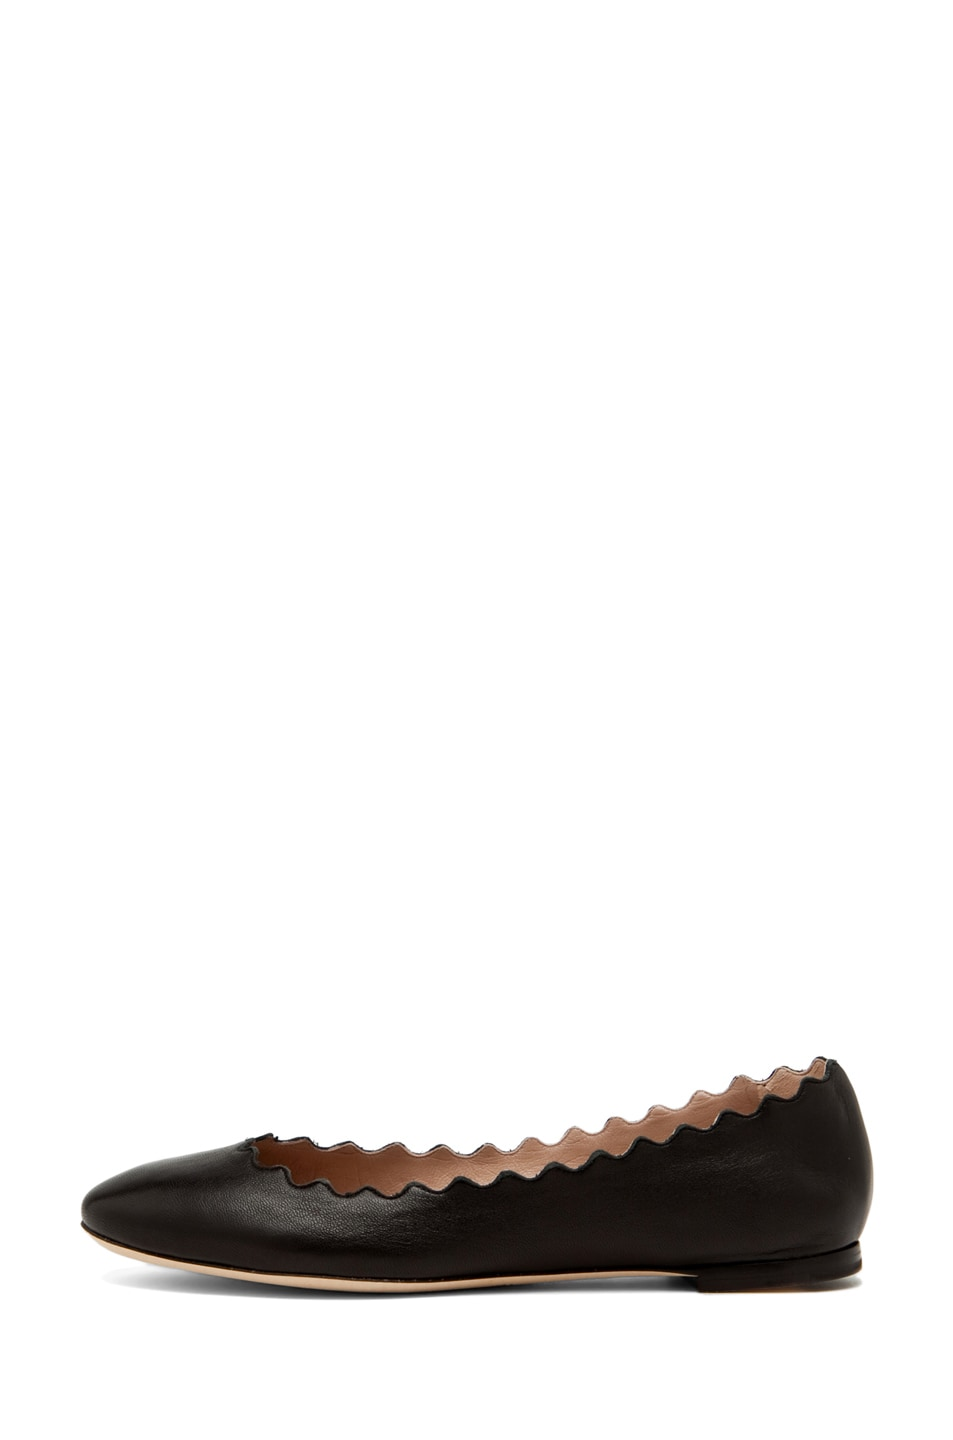 Image 1 of Chloe Lambskin Leather Scalloped Flats in Black